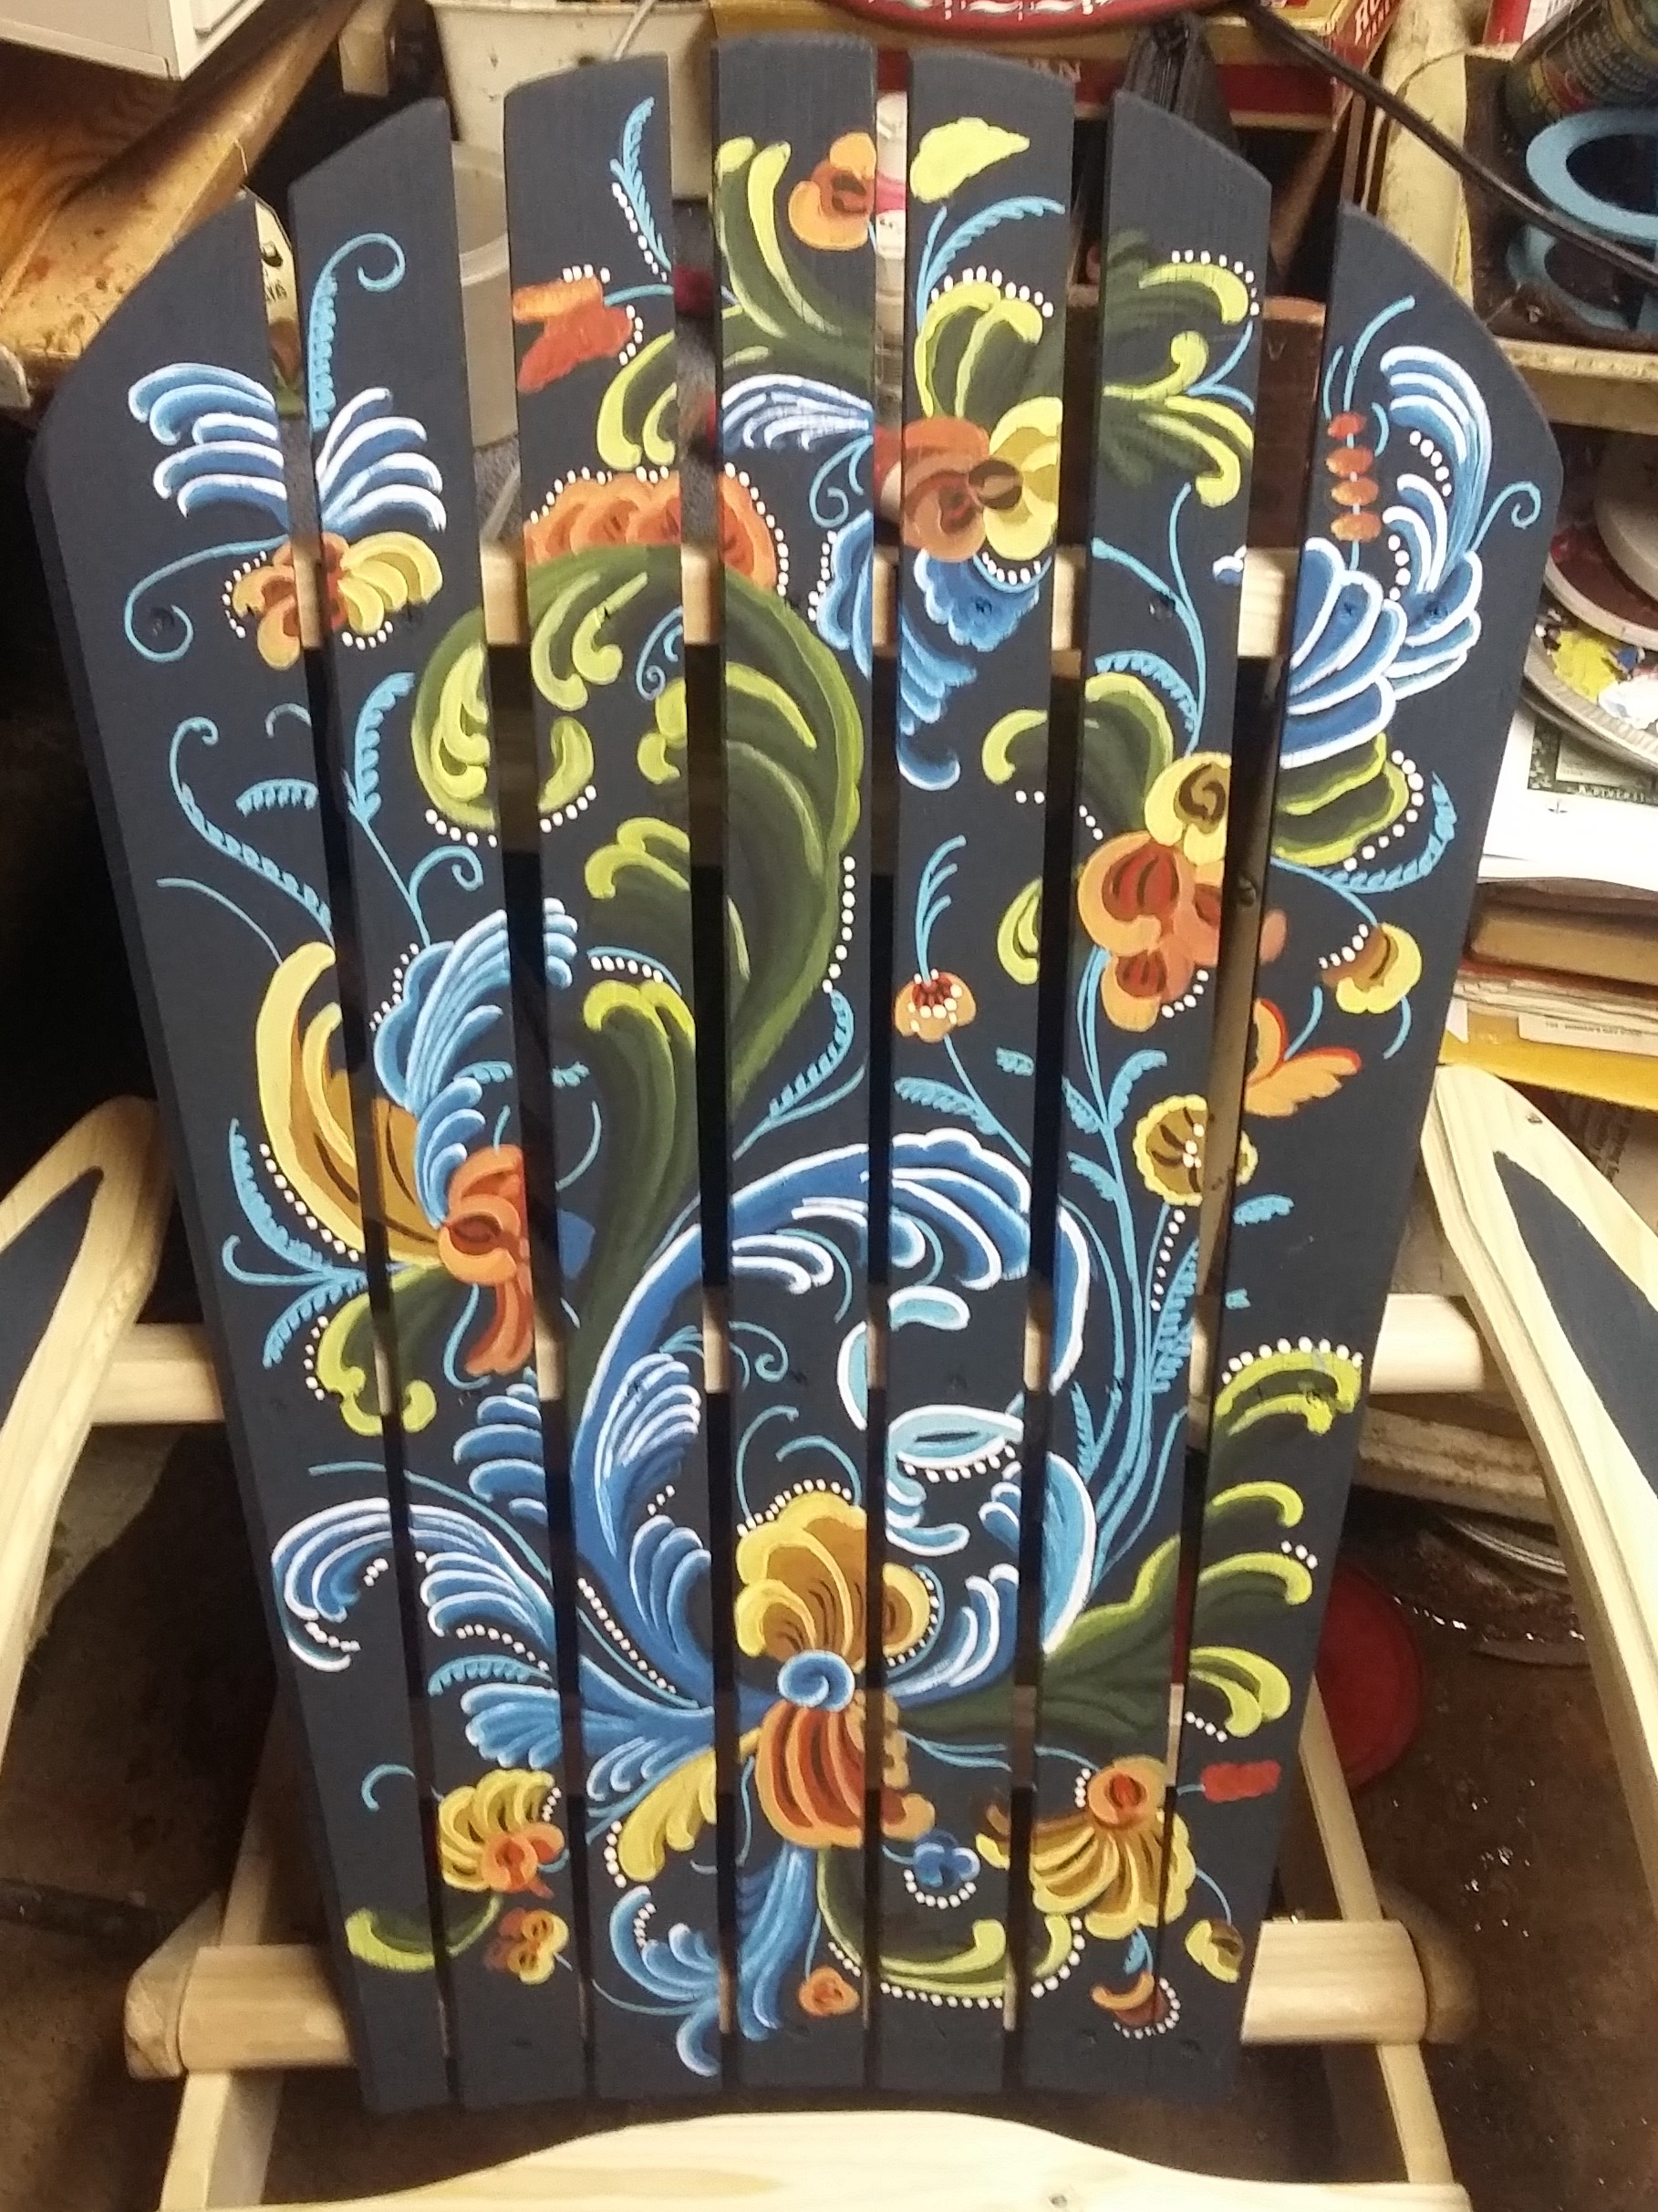 A chair rosemaled by Lisa Severance.